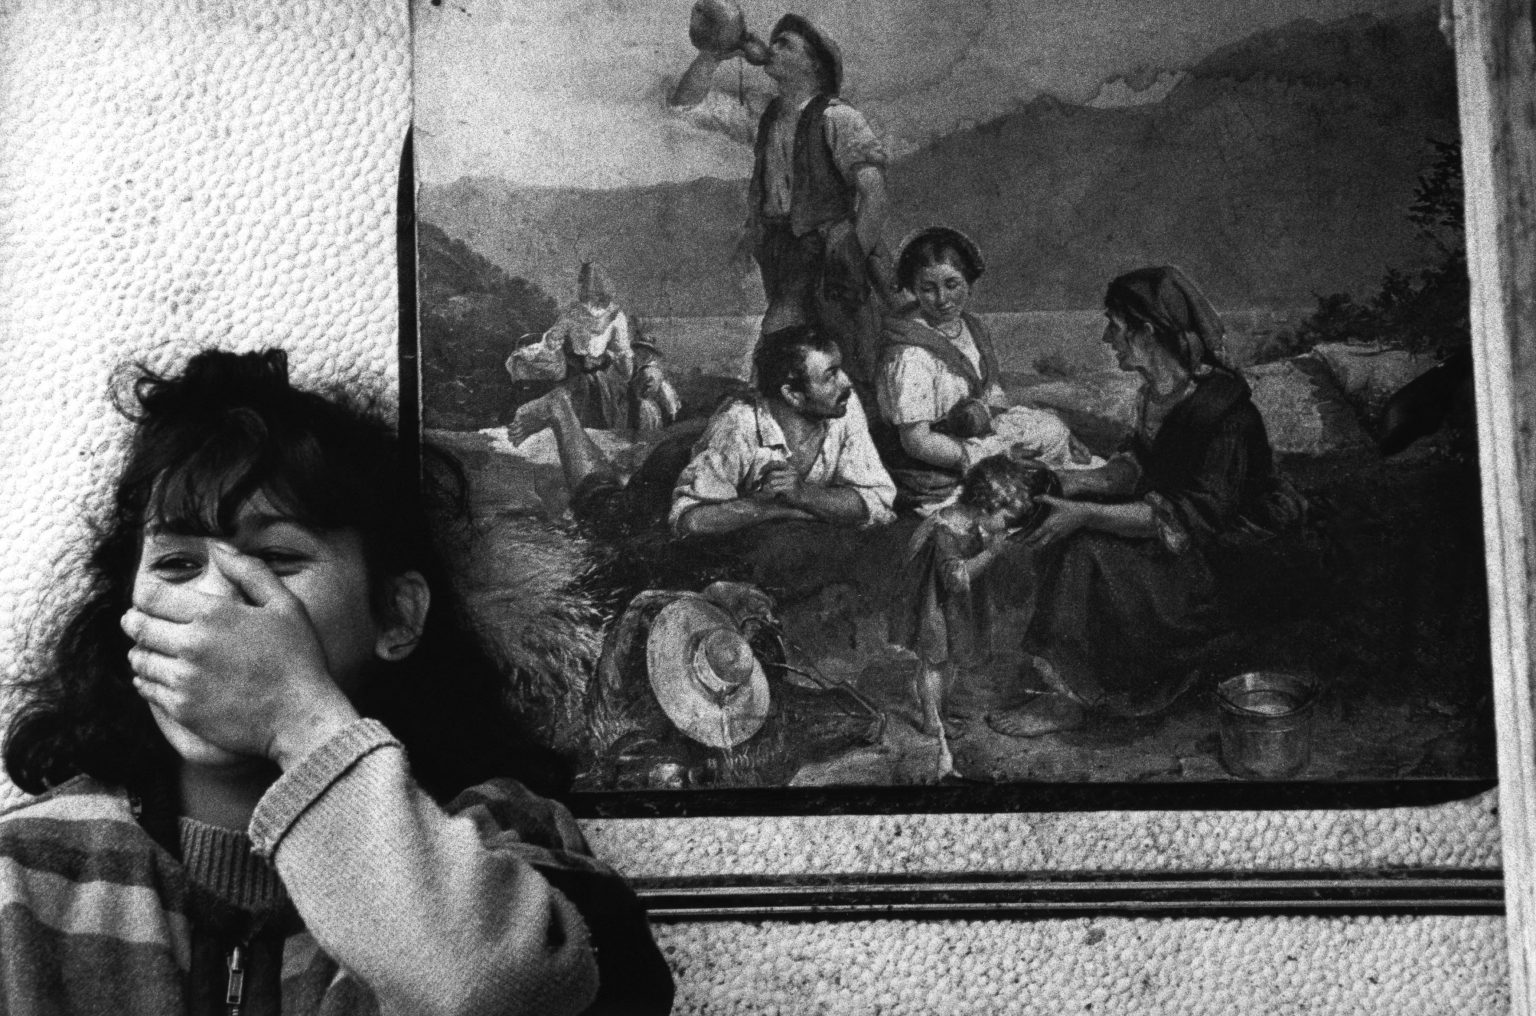 """Florence , 1993 - Nomads' camp - Gypsy girl >< Firenze , 1993 - Campo nomadi - Giovane zingara <p><span style=""""color: #ff0000""""><strong>*** SPECIAL   FEE   APPLIES ***</strong></span></p>"""